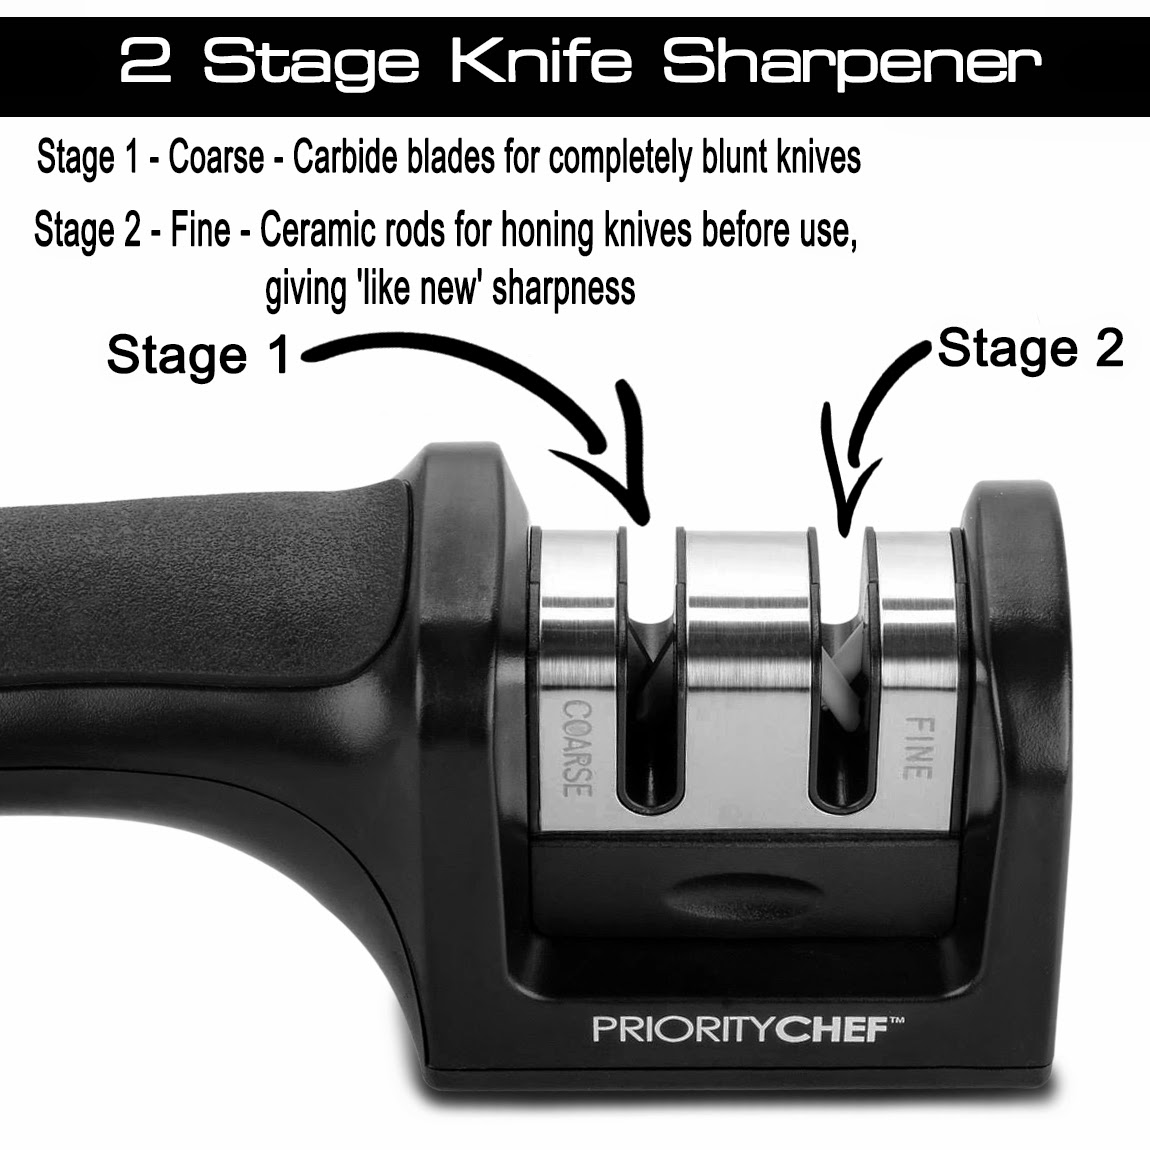 Priority Chef's knife sharpening system has been designed to turn any dull or blunt knife into as sharp as new.